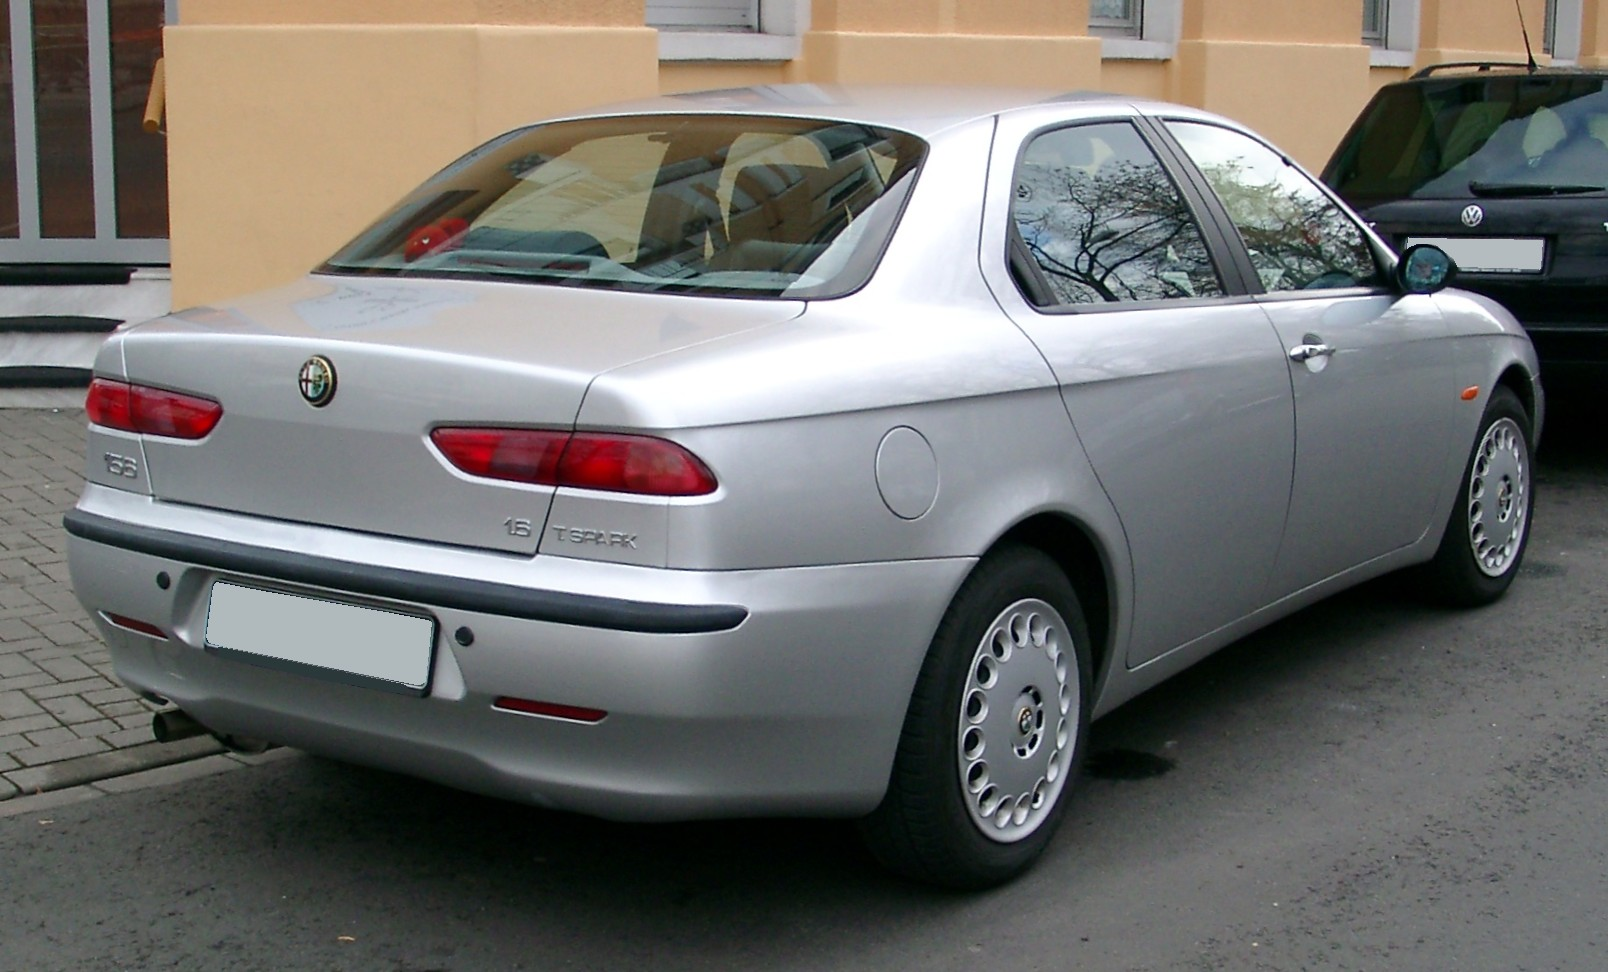 file alfa romeo 156 rear wikimedia commons. Black Bedroom Furniture Sets. Home Design Ideas